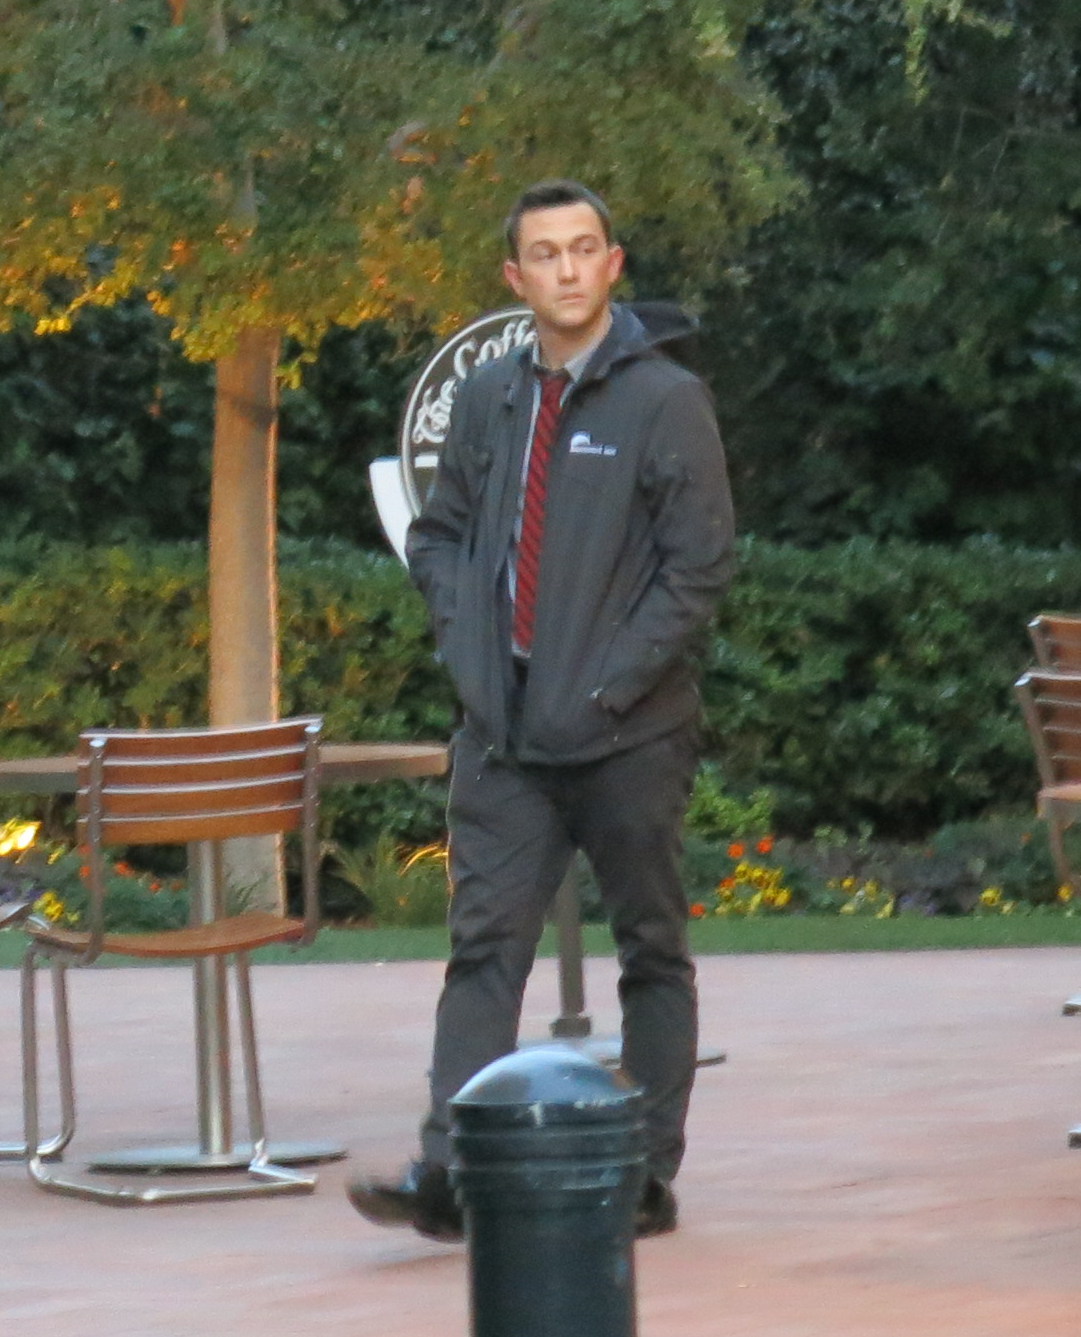 Joseph Gordon-Levitt  spotted outside Coffee Bean wearing the original Summit Ice softshell.